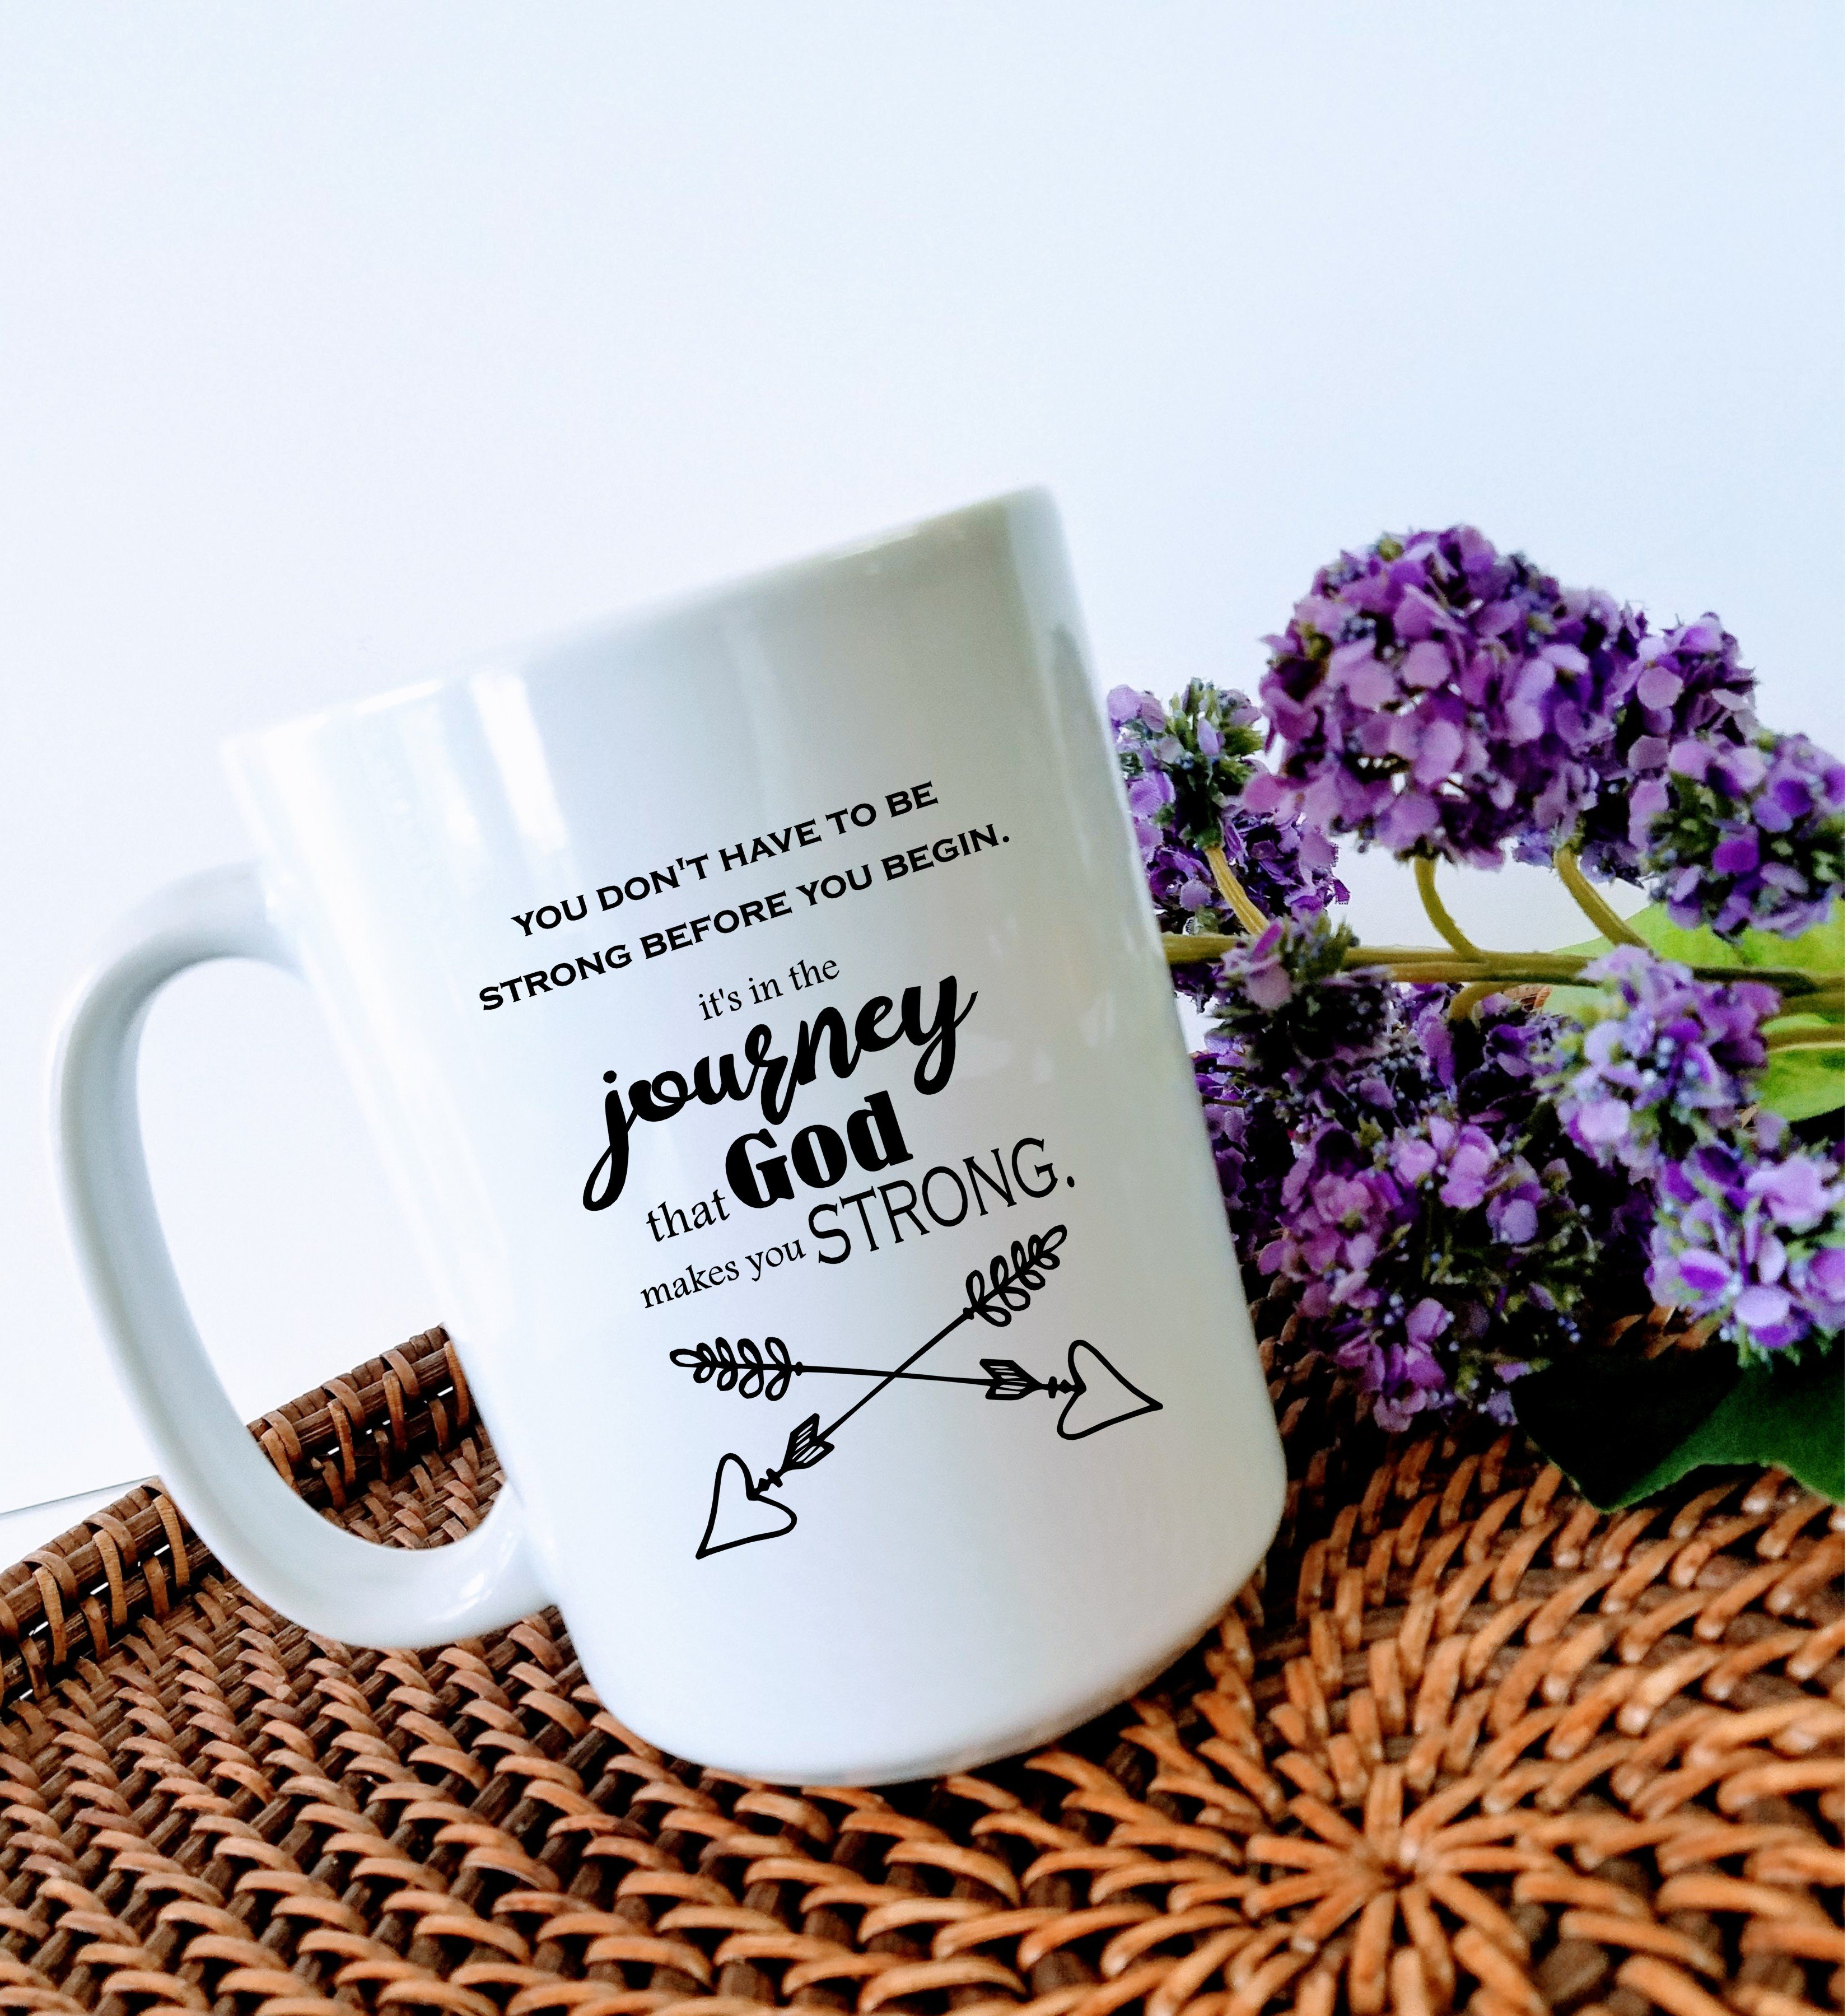 The Mug Coffee >> Journey Mug Strength In The Journey Mug Encouragement Mug Latte